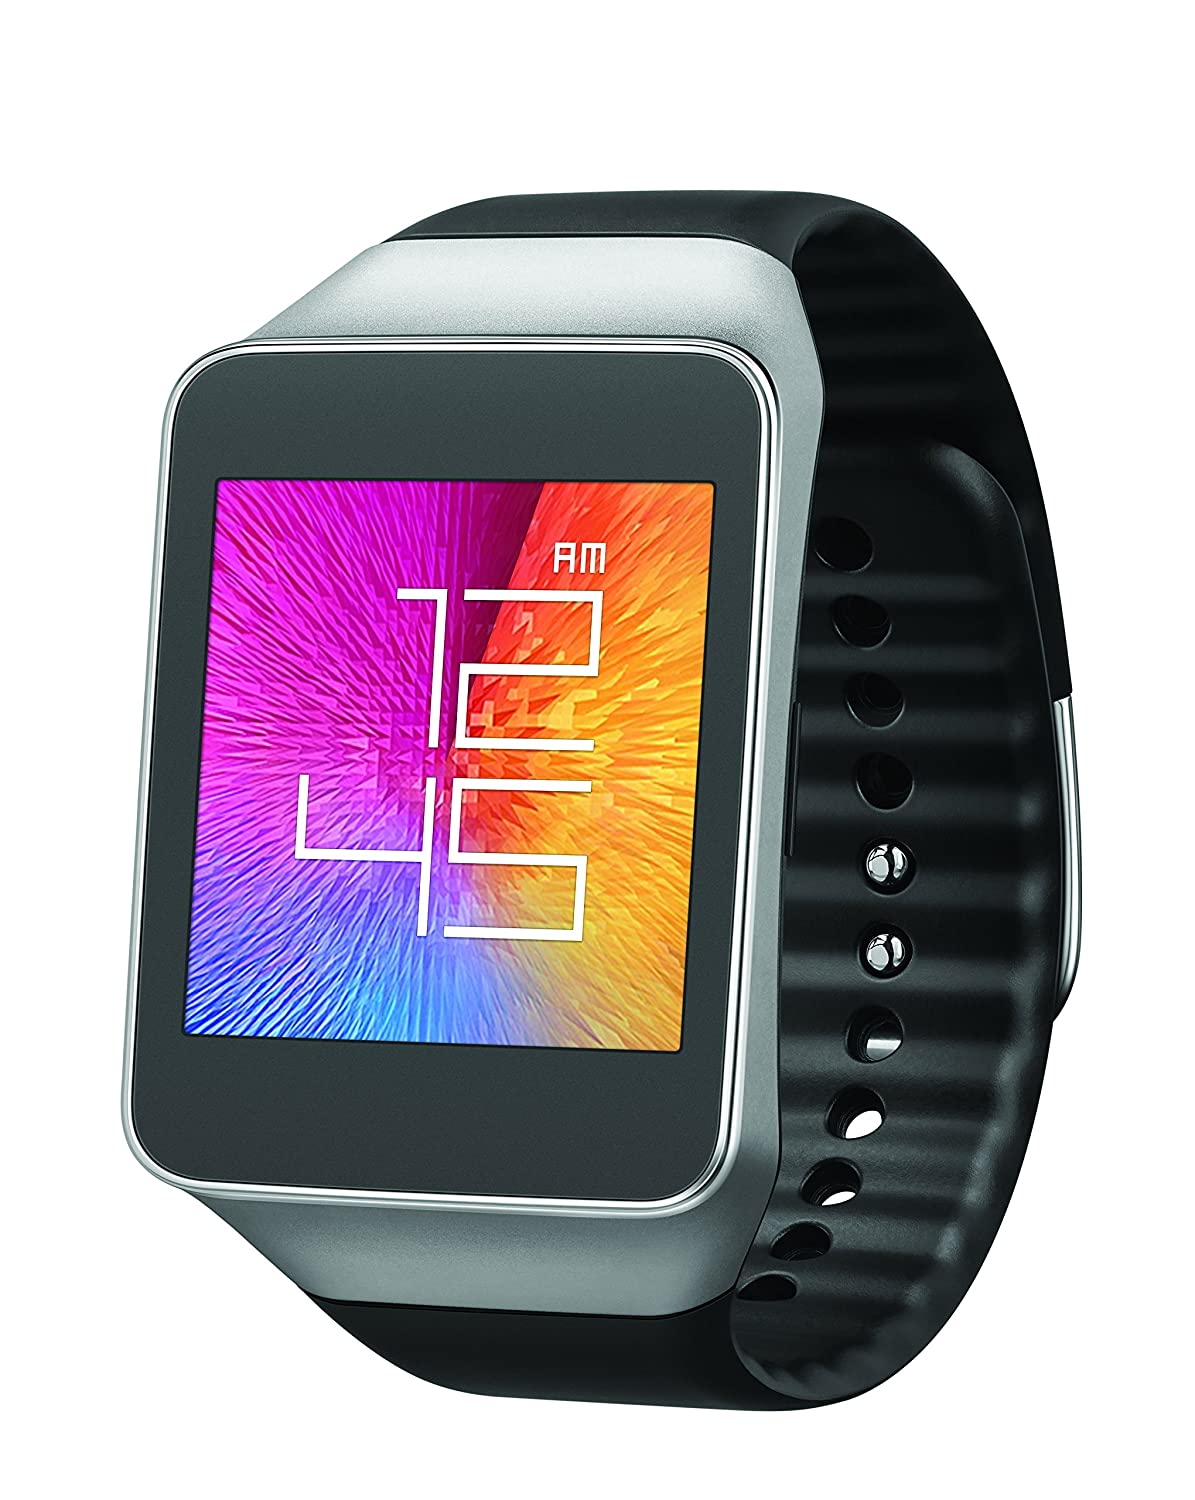 samsung galaxy gear smart watch live android sm r382 black waterproof bluetooth ebay. Black Bedroom Furniture Sets. Home Design Ideas